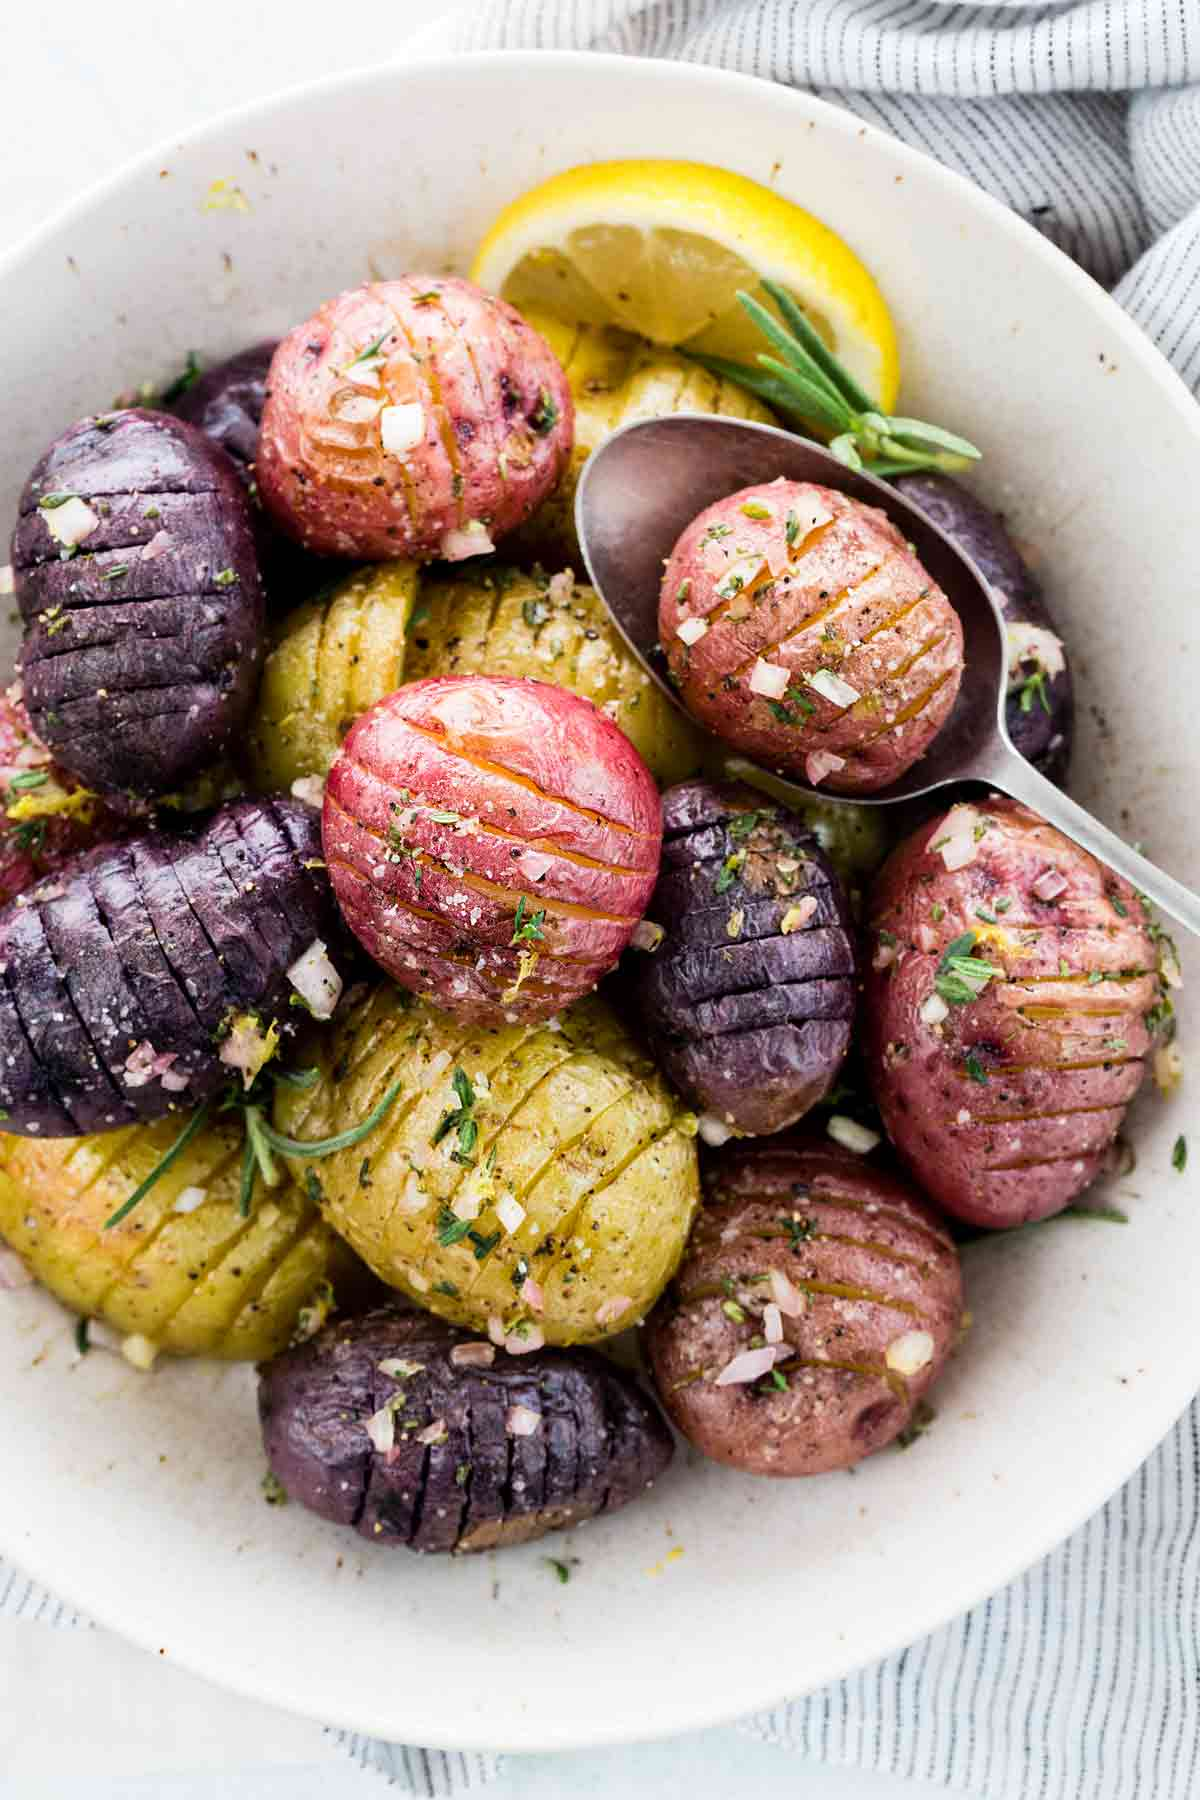 Hasselback potatoes roasted until crisp and topped with a tangy lemon garlic sauce. A flavorful and wholesome side dish bursting with fresh herbs and seasonings.